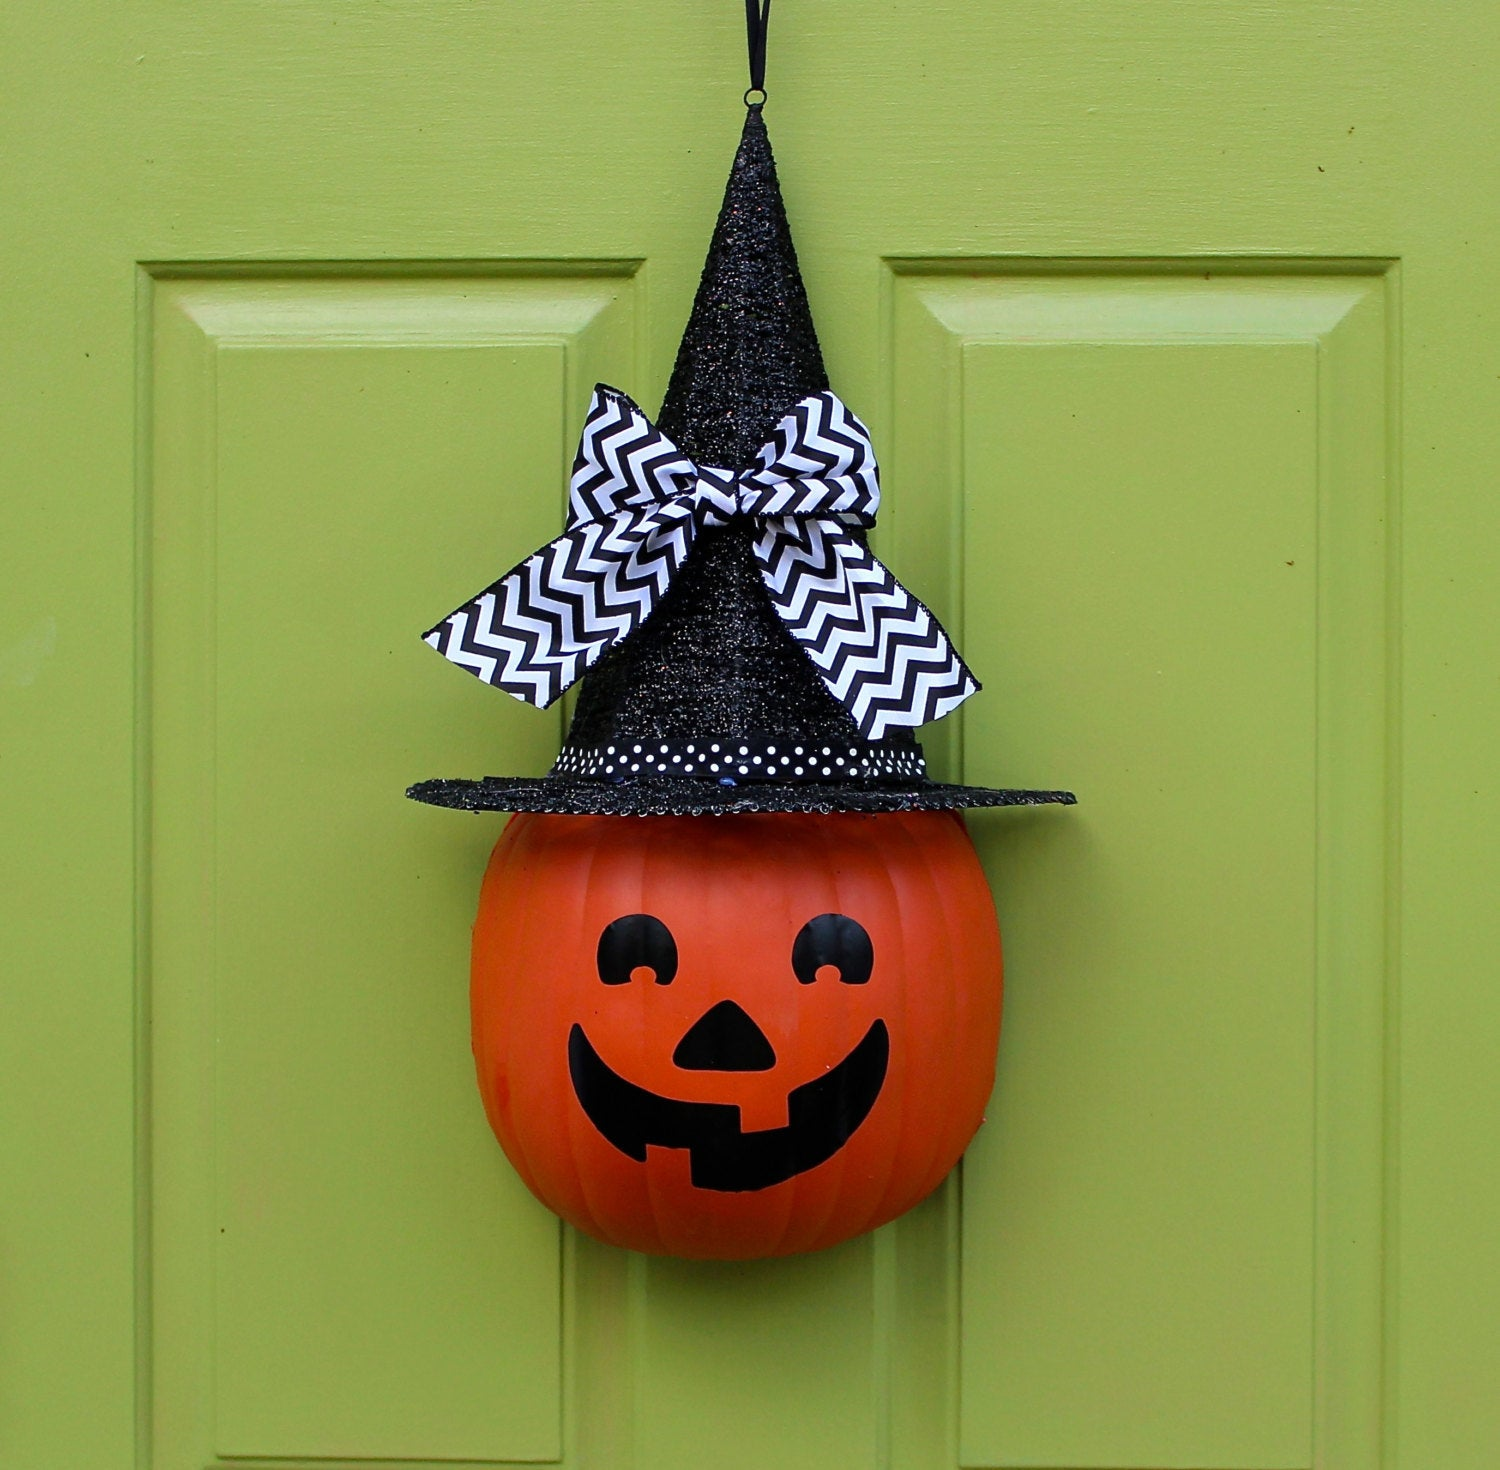 Halloween Wreath - Halloween Decor - Halloween Door Wreath - Jack-O'-Lantern Decor